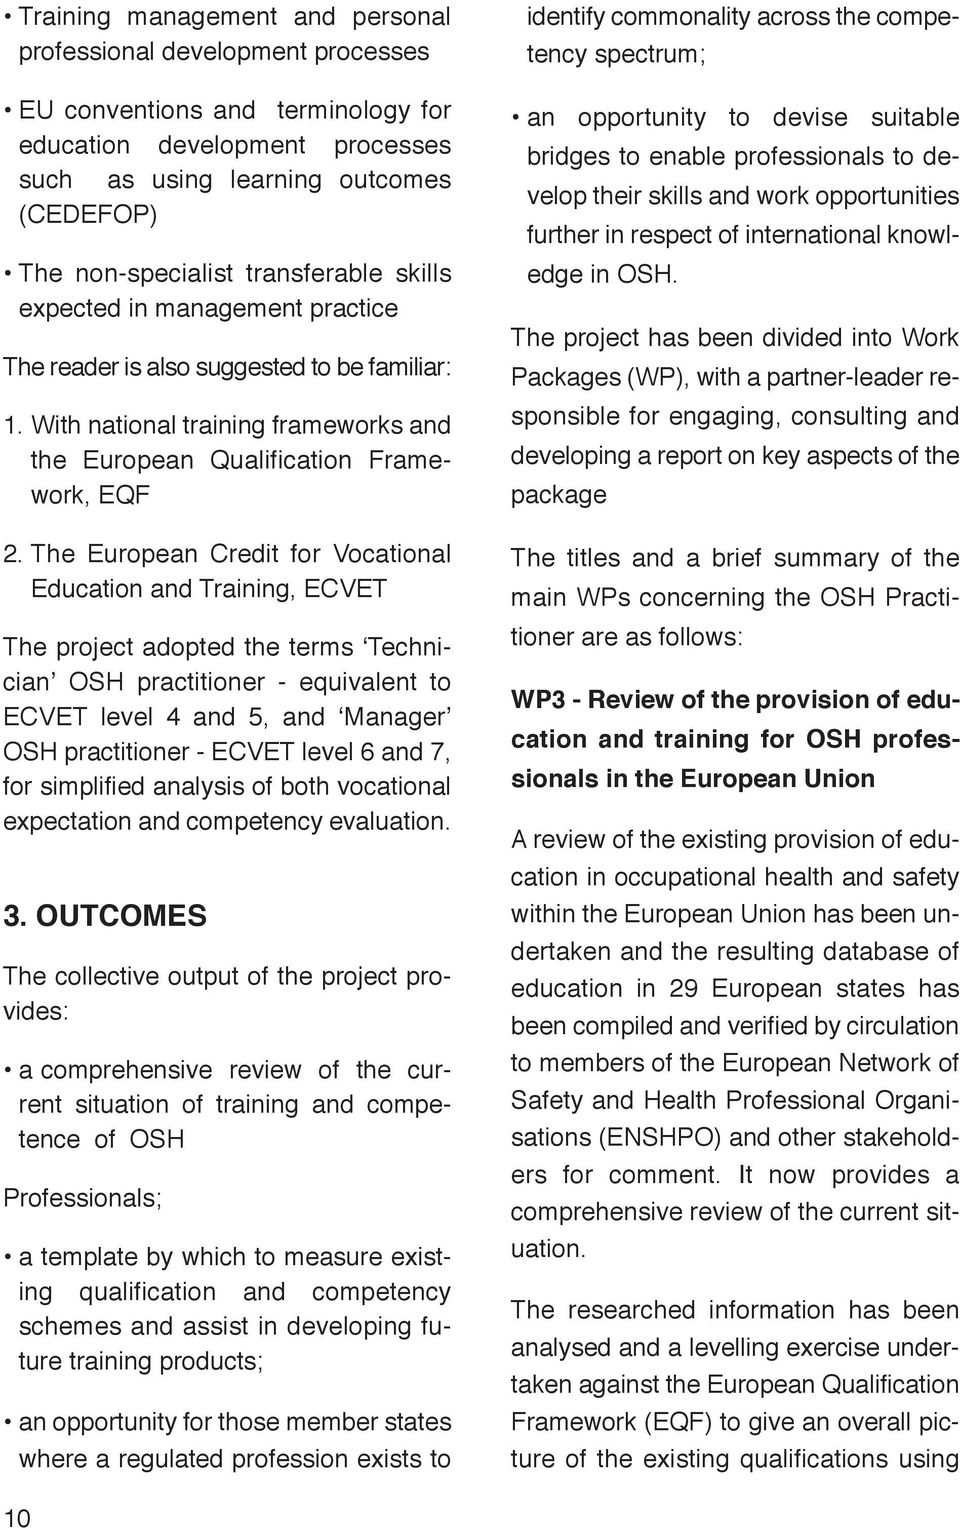 The European Credit for Vocational Education and Training, ECVET The project adopted the terms Technician OSH practitioner - equivalent to ECVET level 4 and 5, and Manager OSH practitioner - ECVET